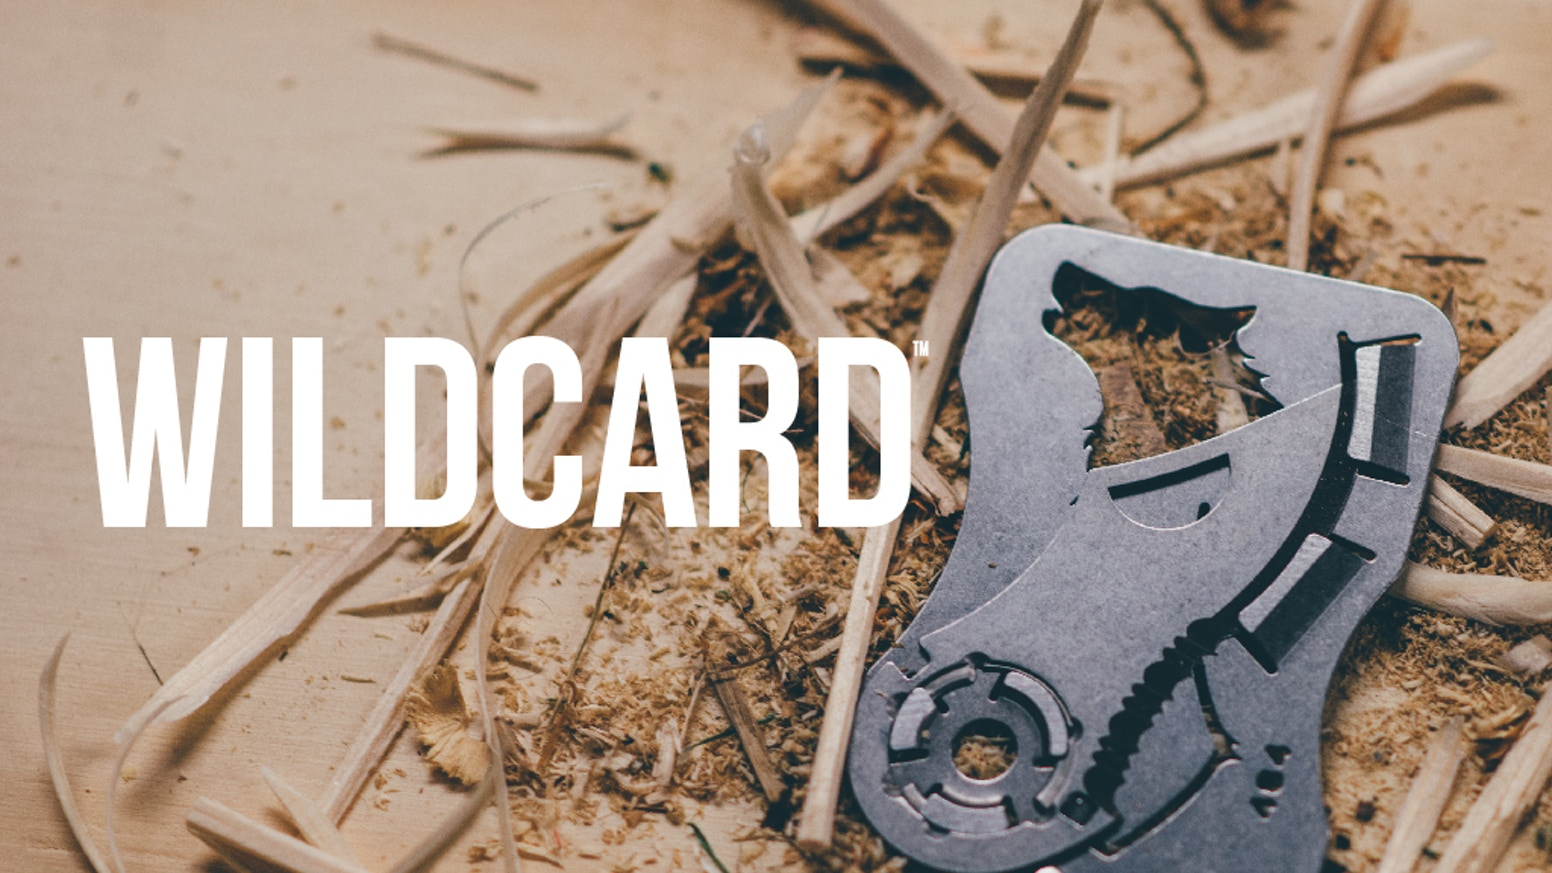 Inspired by outdoor performance, designed for every day carry. WildCard is the hyper-light knife multitool that fits in your wallet. Made in USA